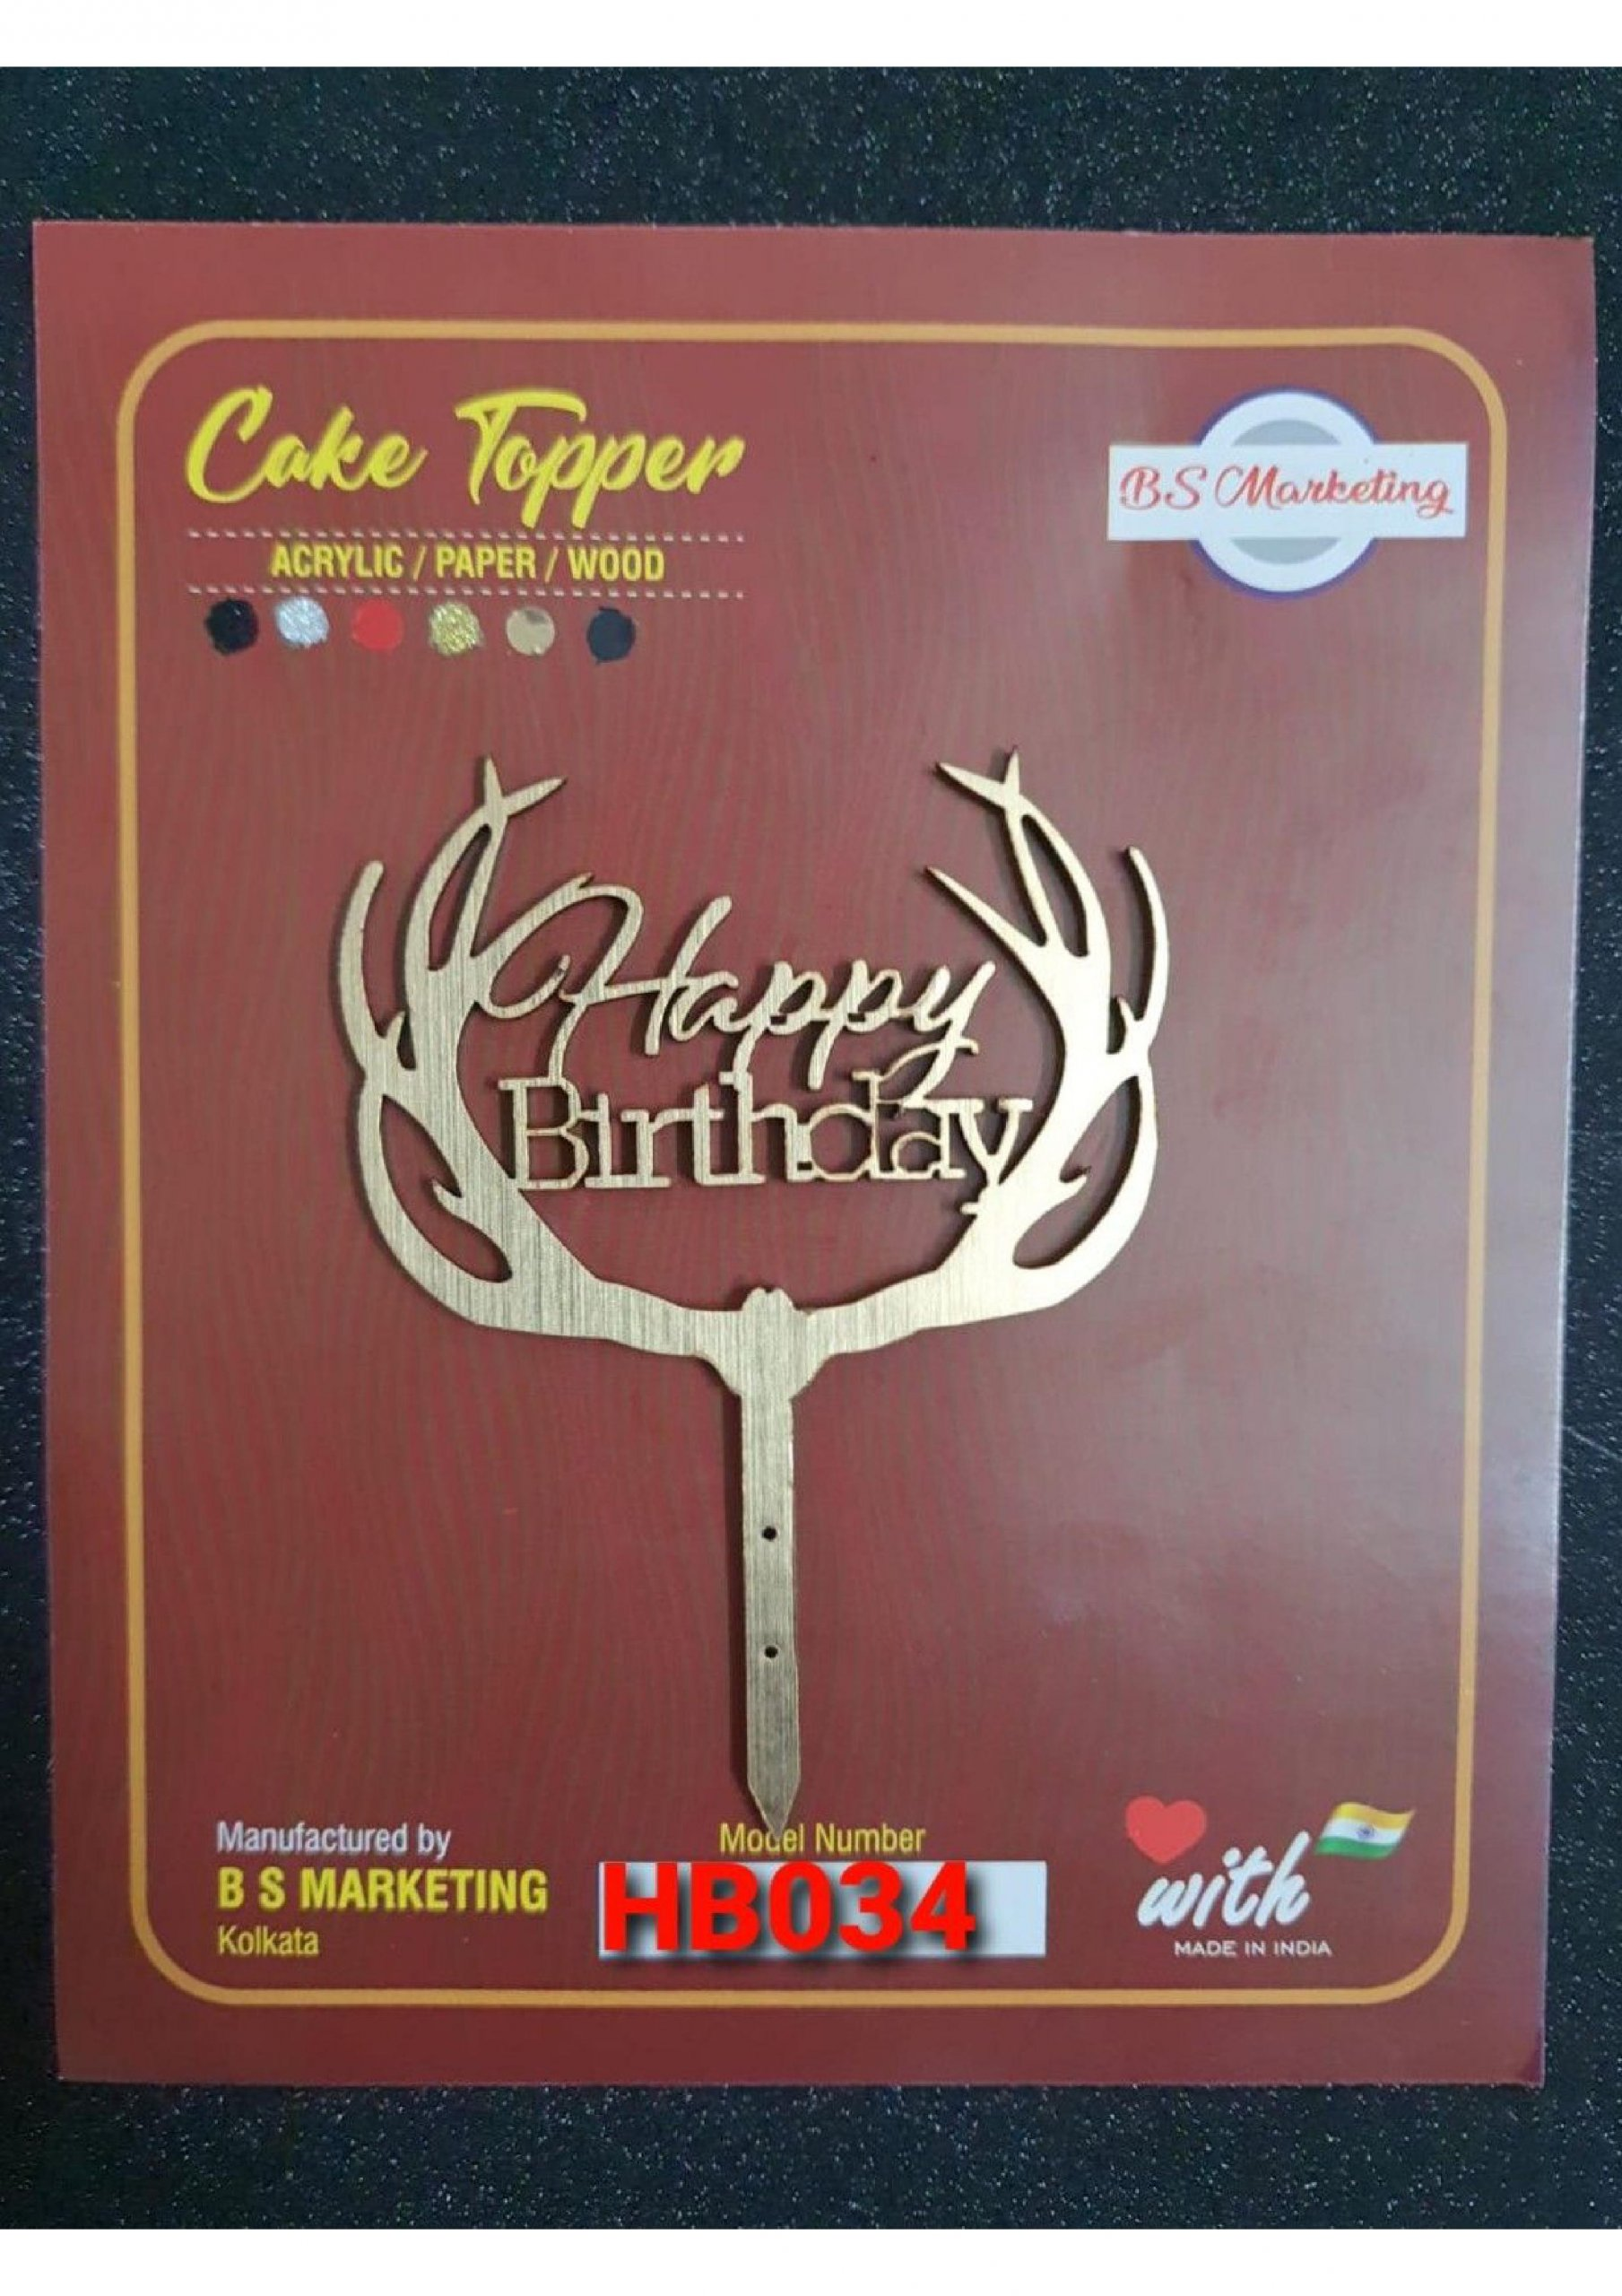 Happy Birthday Toppers | Cake Toppers - All About Baking